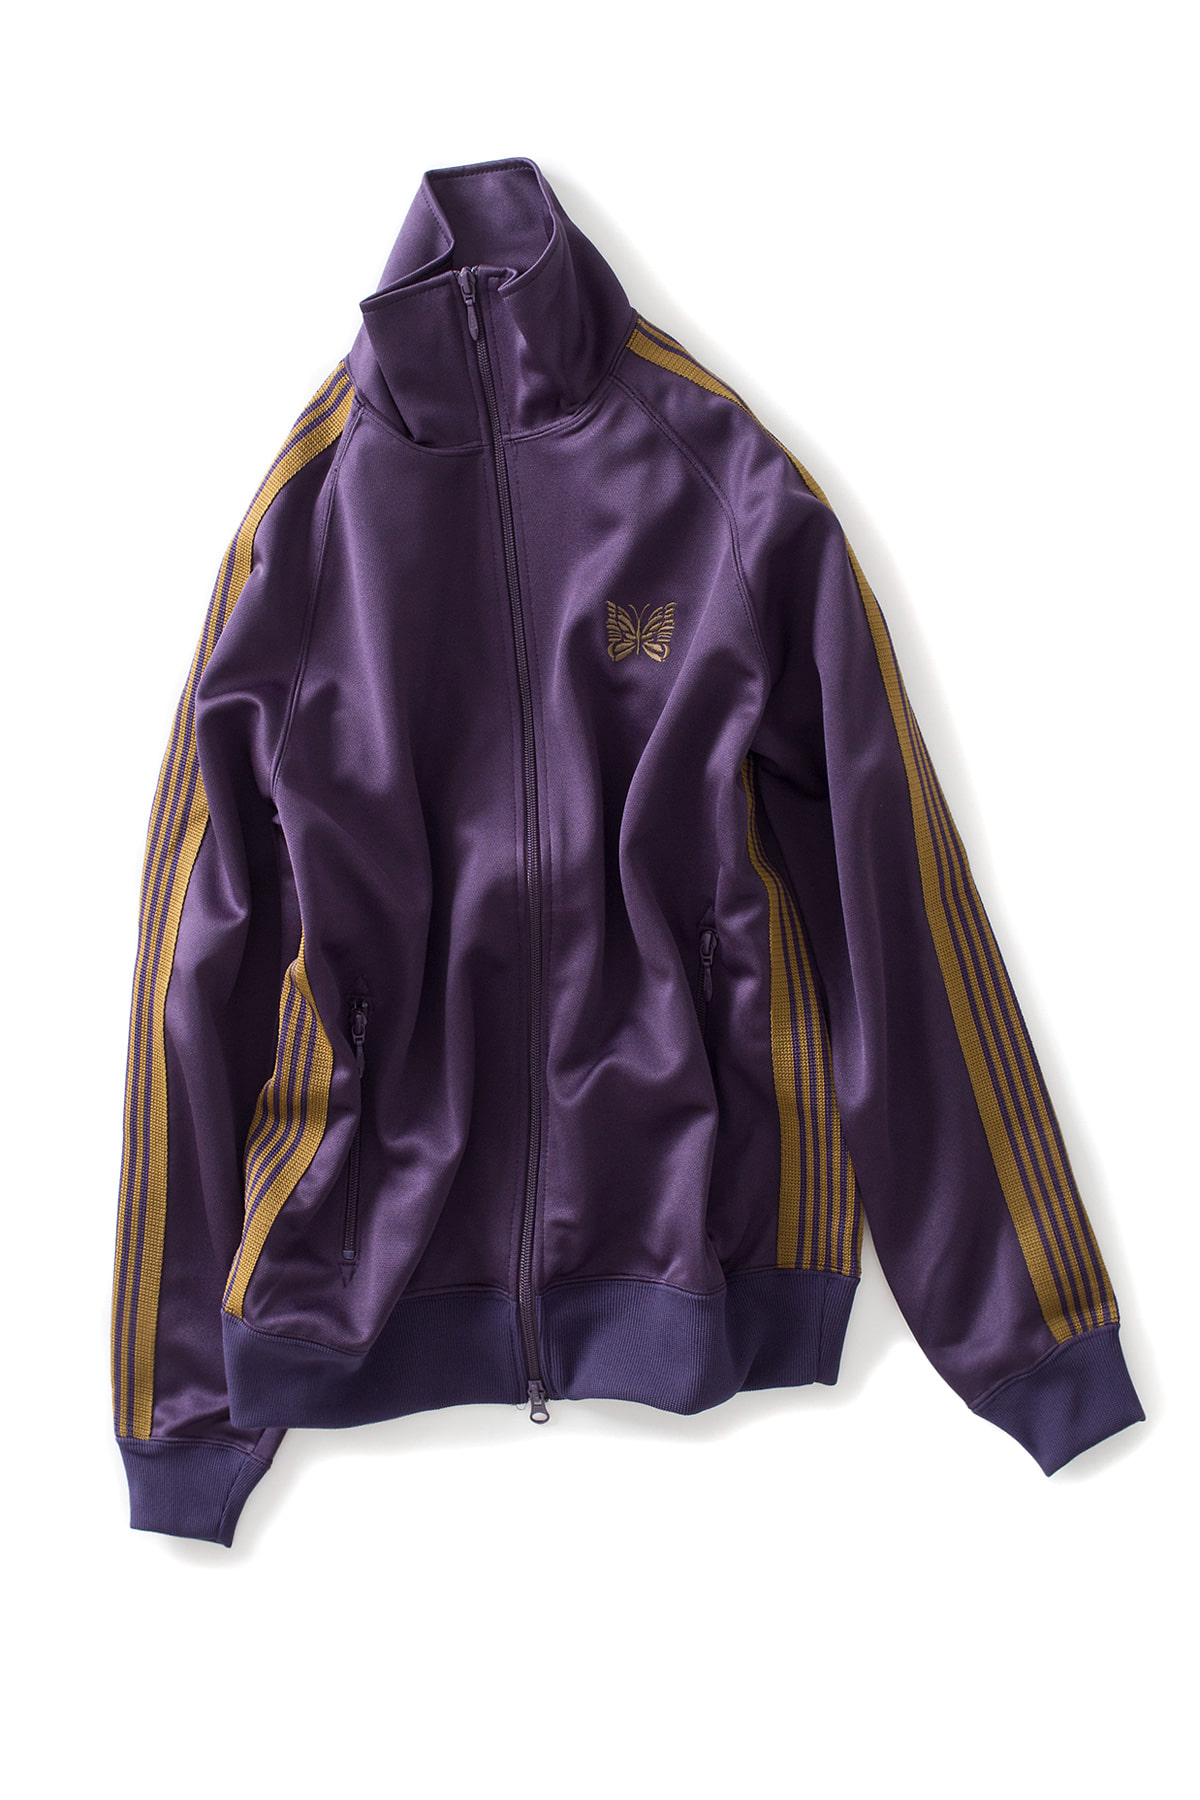 NEEDLES : Track Jacket (Purple)